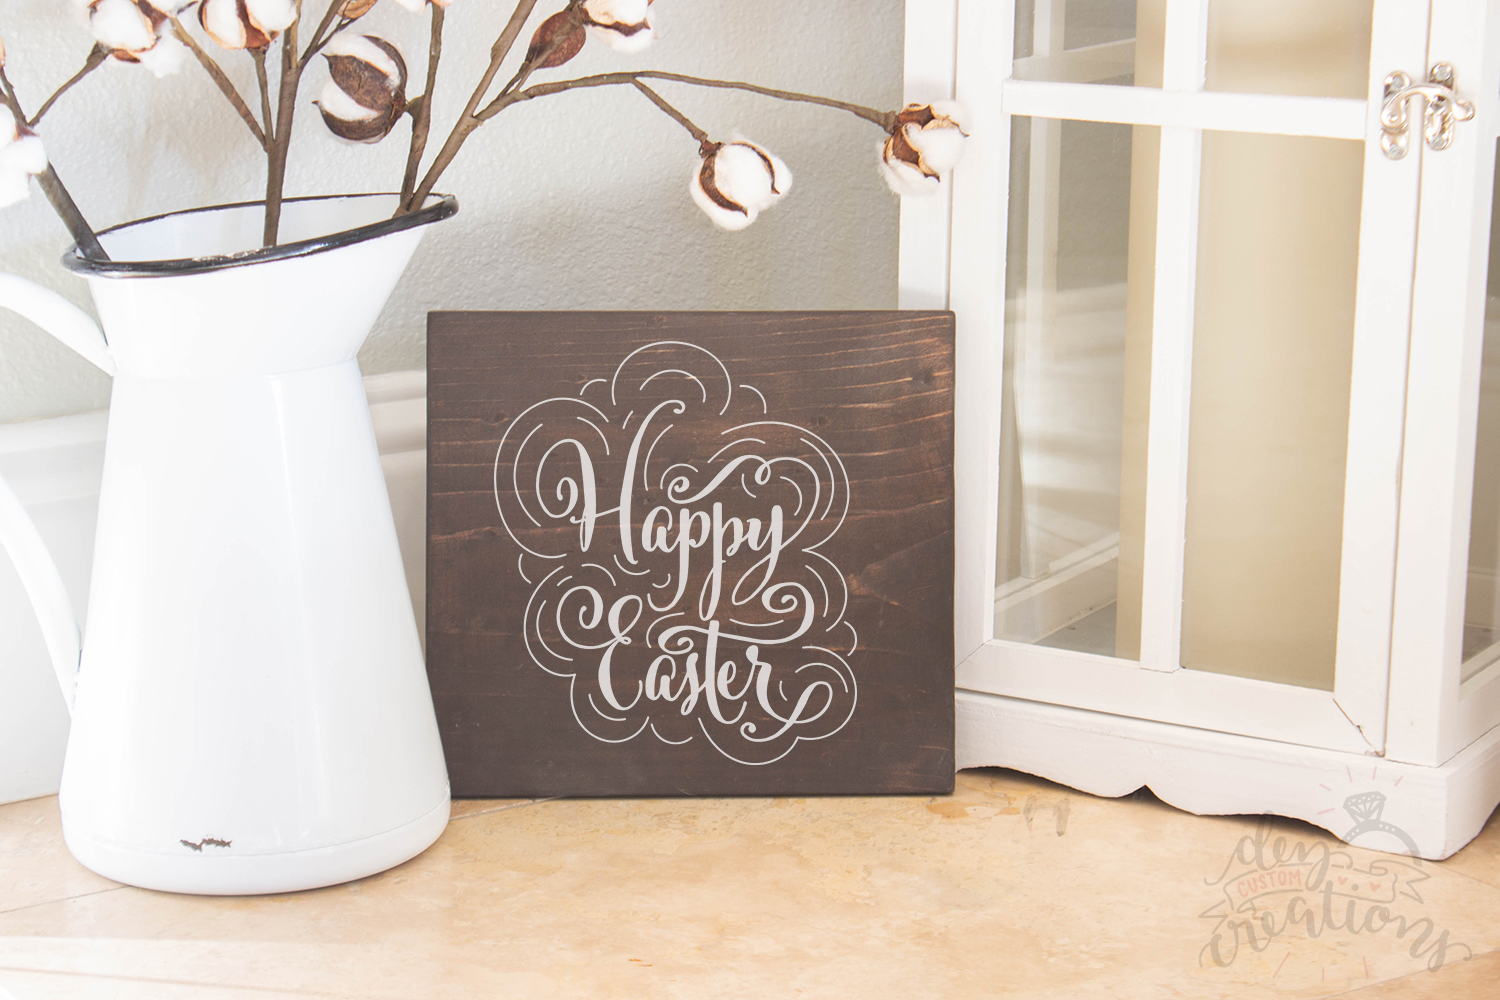 Happy Easter - Easter Design - SVG DXF PNG digital Cut files example image 3